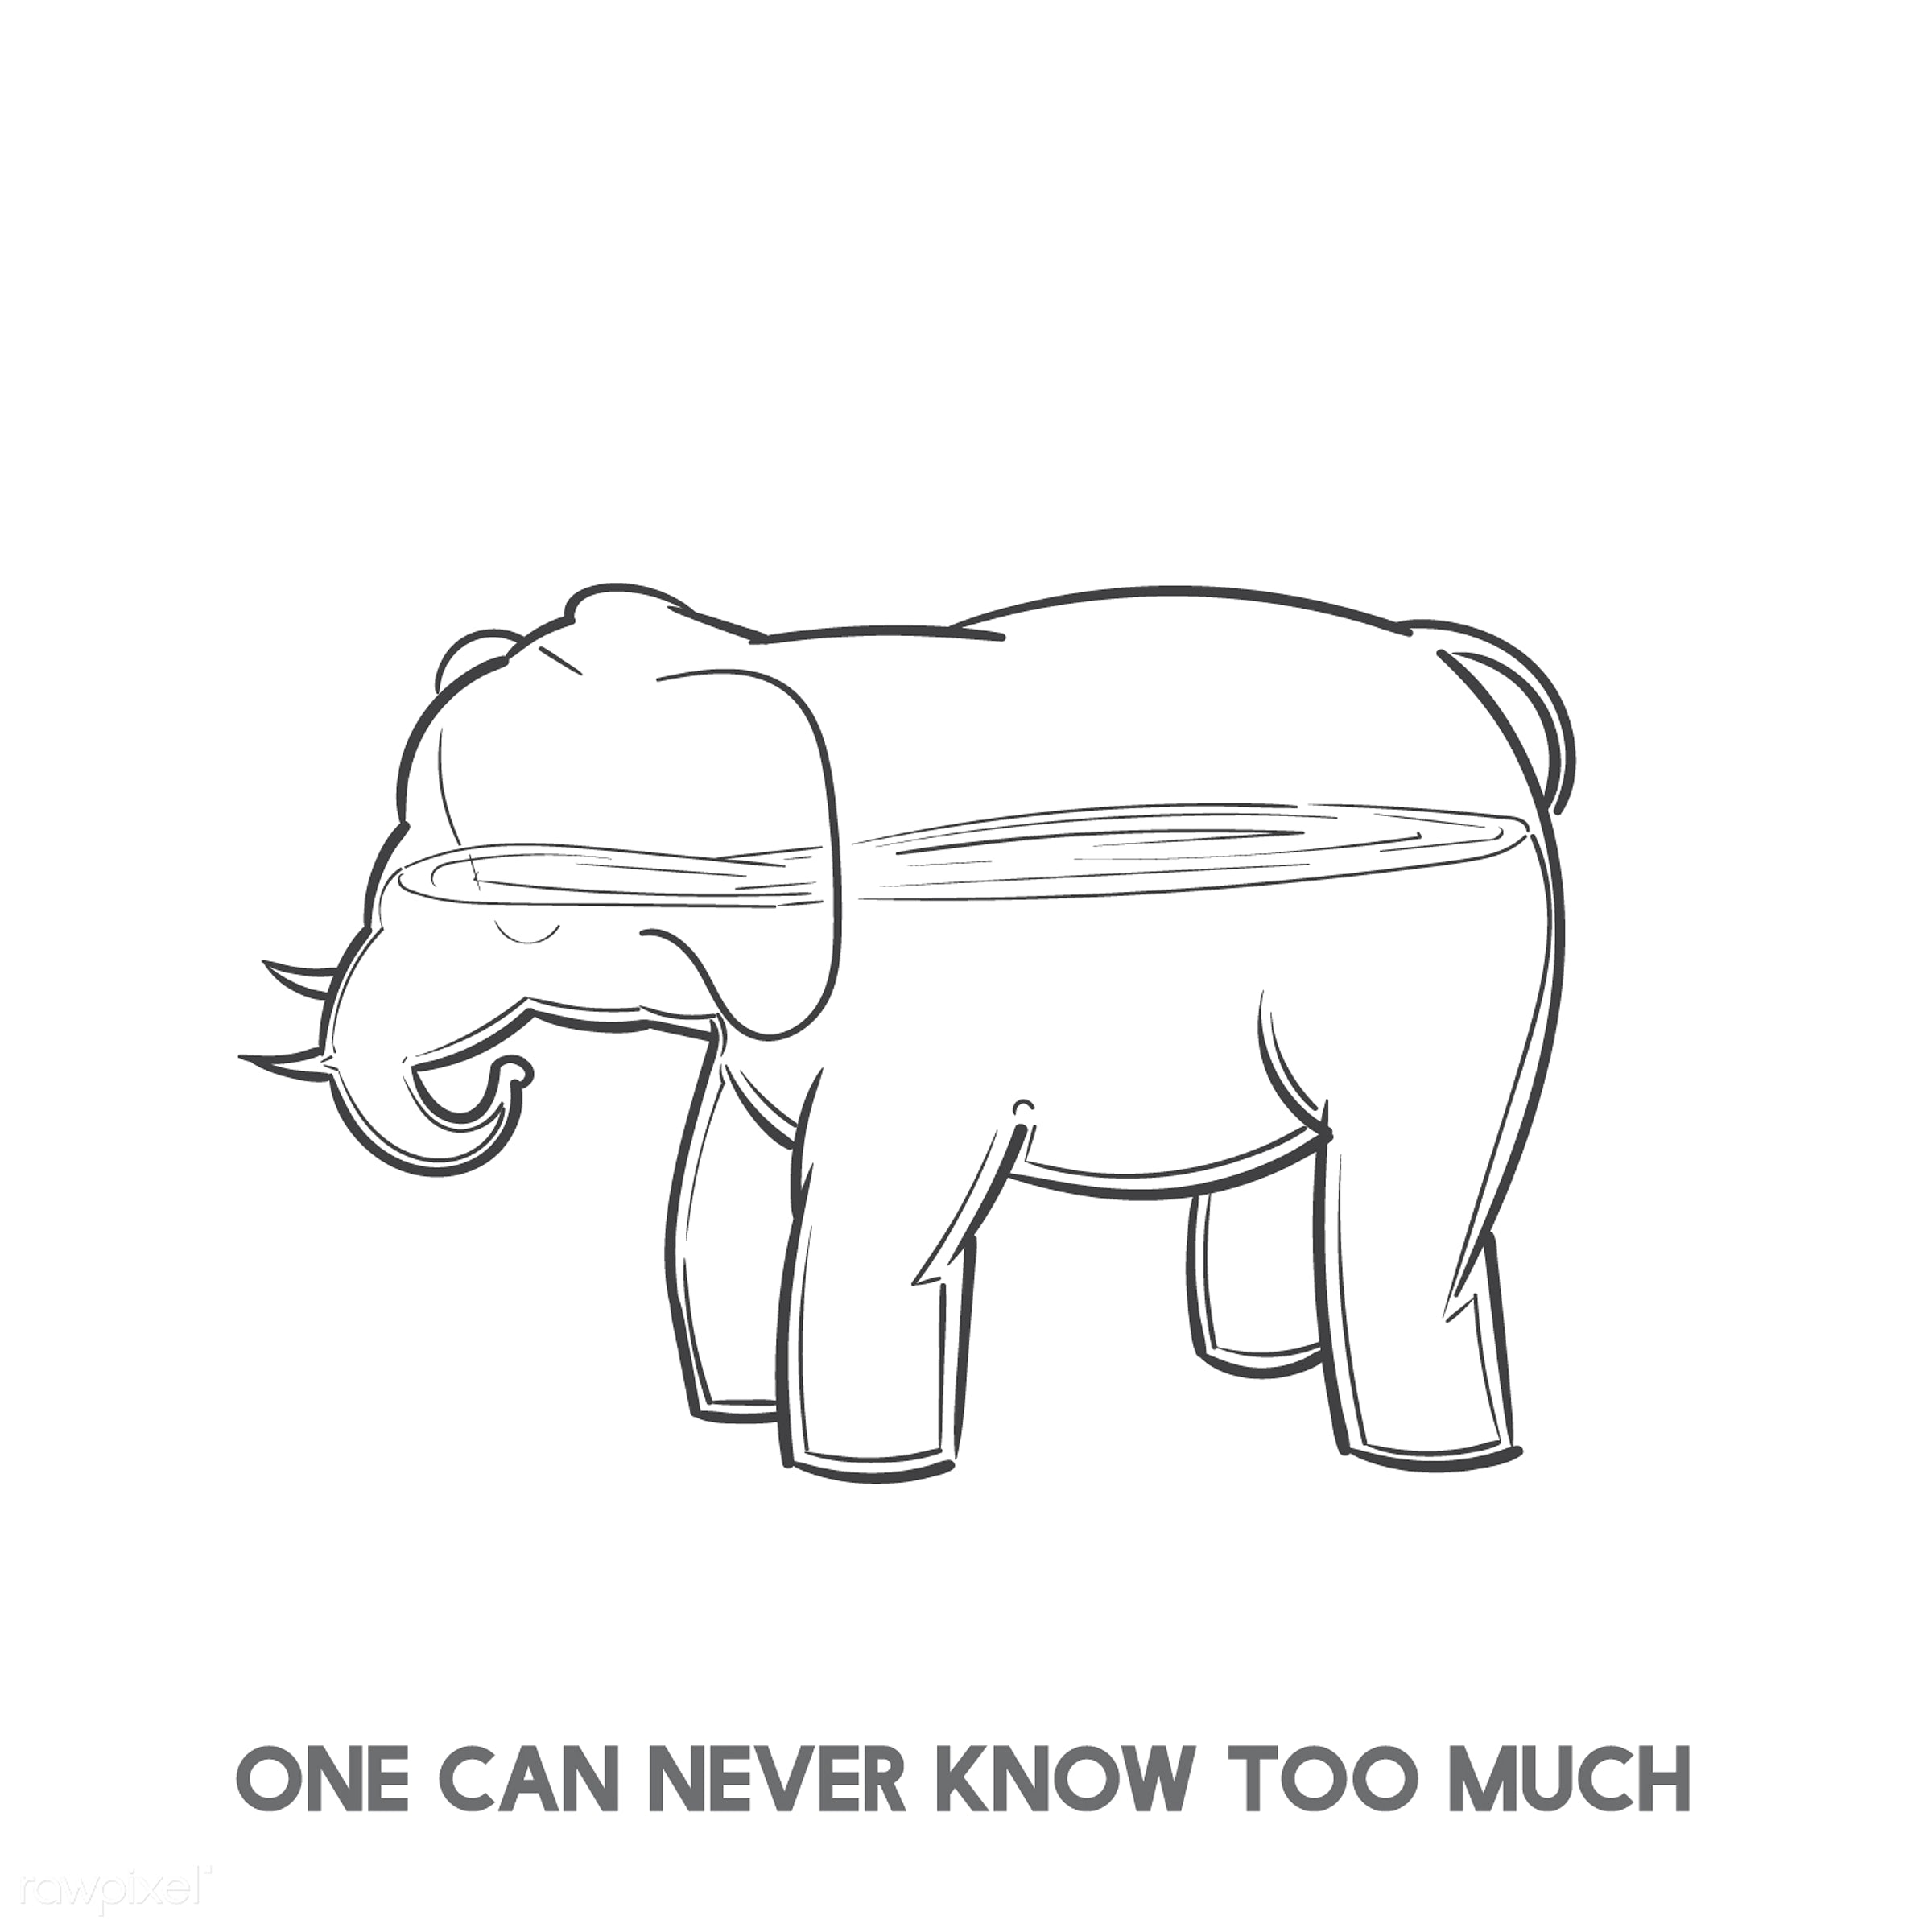 One can never know to much - animal, art, creative, creativity, design, drawing, drawn, educate, elephant, empty, experience...